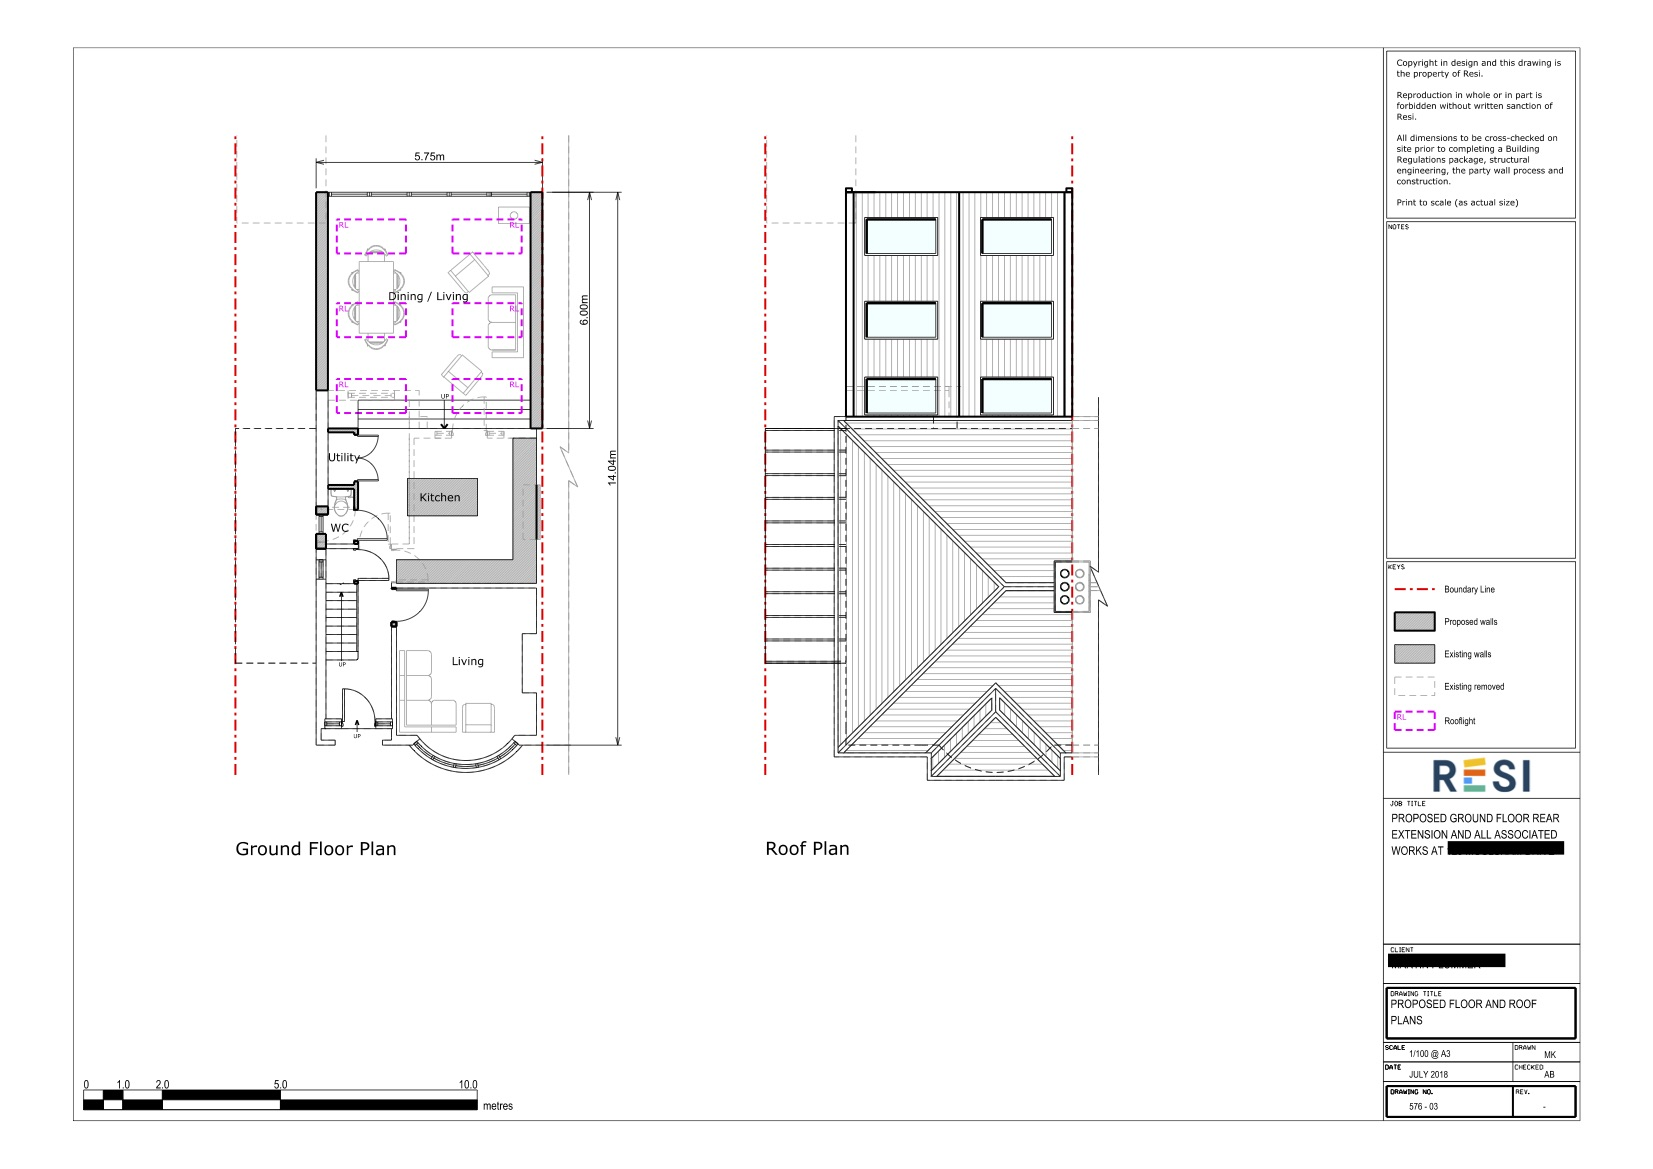 Architectural drawings 39   ground floor plans